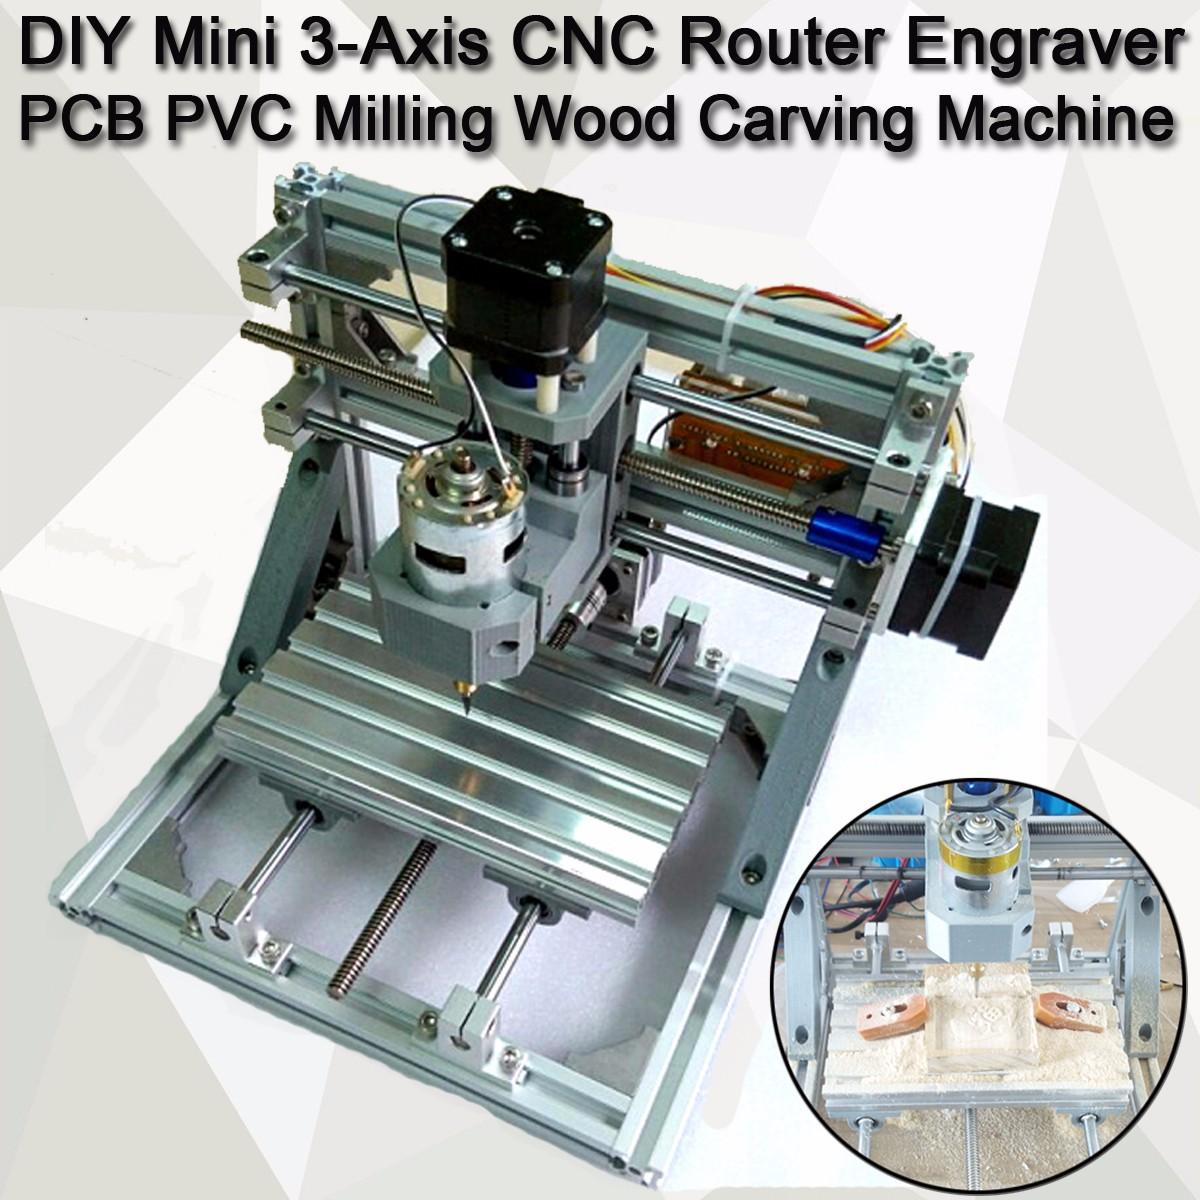 DIY Mini 3 Axis Router CNC 1610 GRBL Control CNC Machine Engraver PCB PVC Milling Wood Carving Machine working area 16x10.5x3cm cnc 2418 with er11 cnc engraving machine pcb milling machine wood carving machine mini cnc router cnc2418 best advanced toys